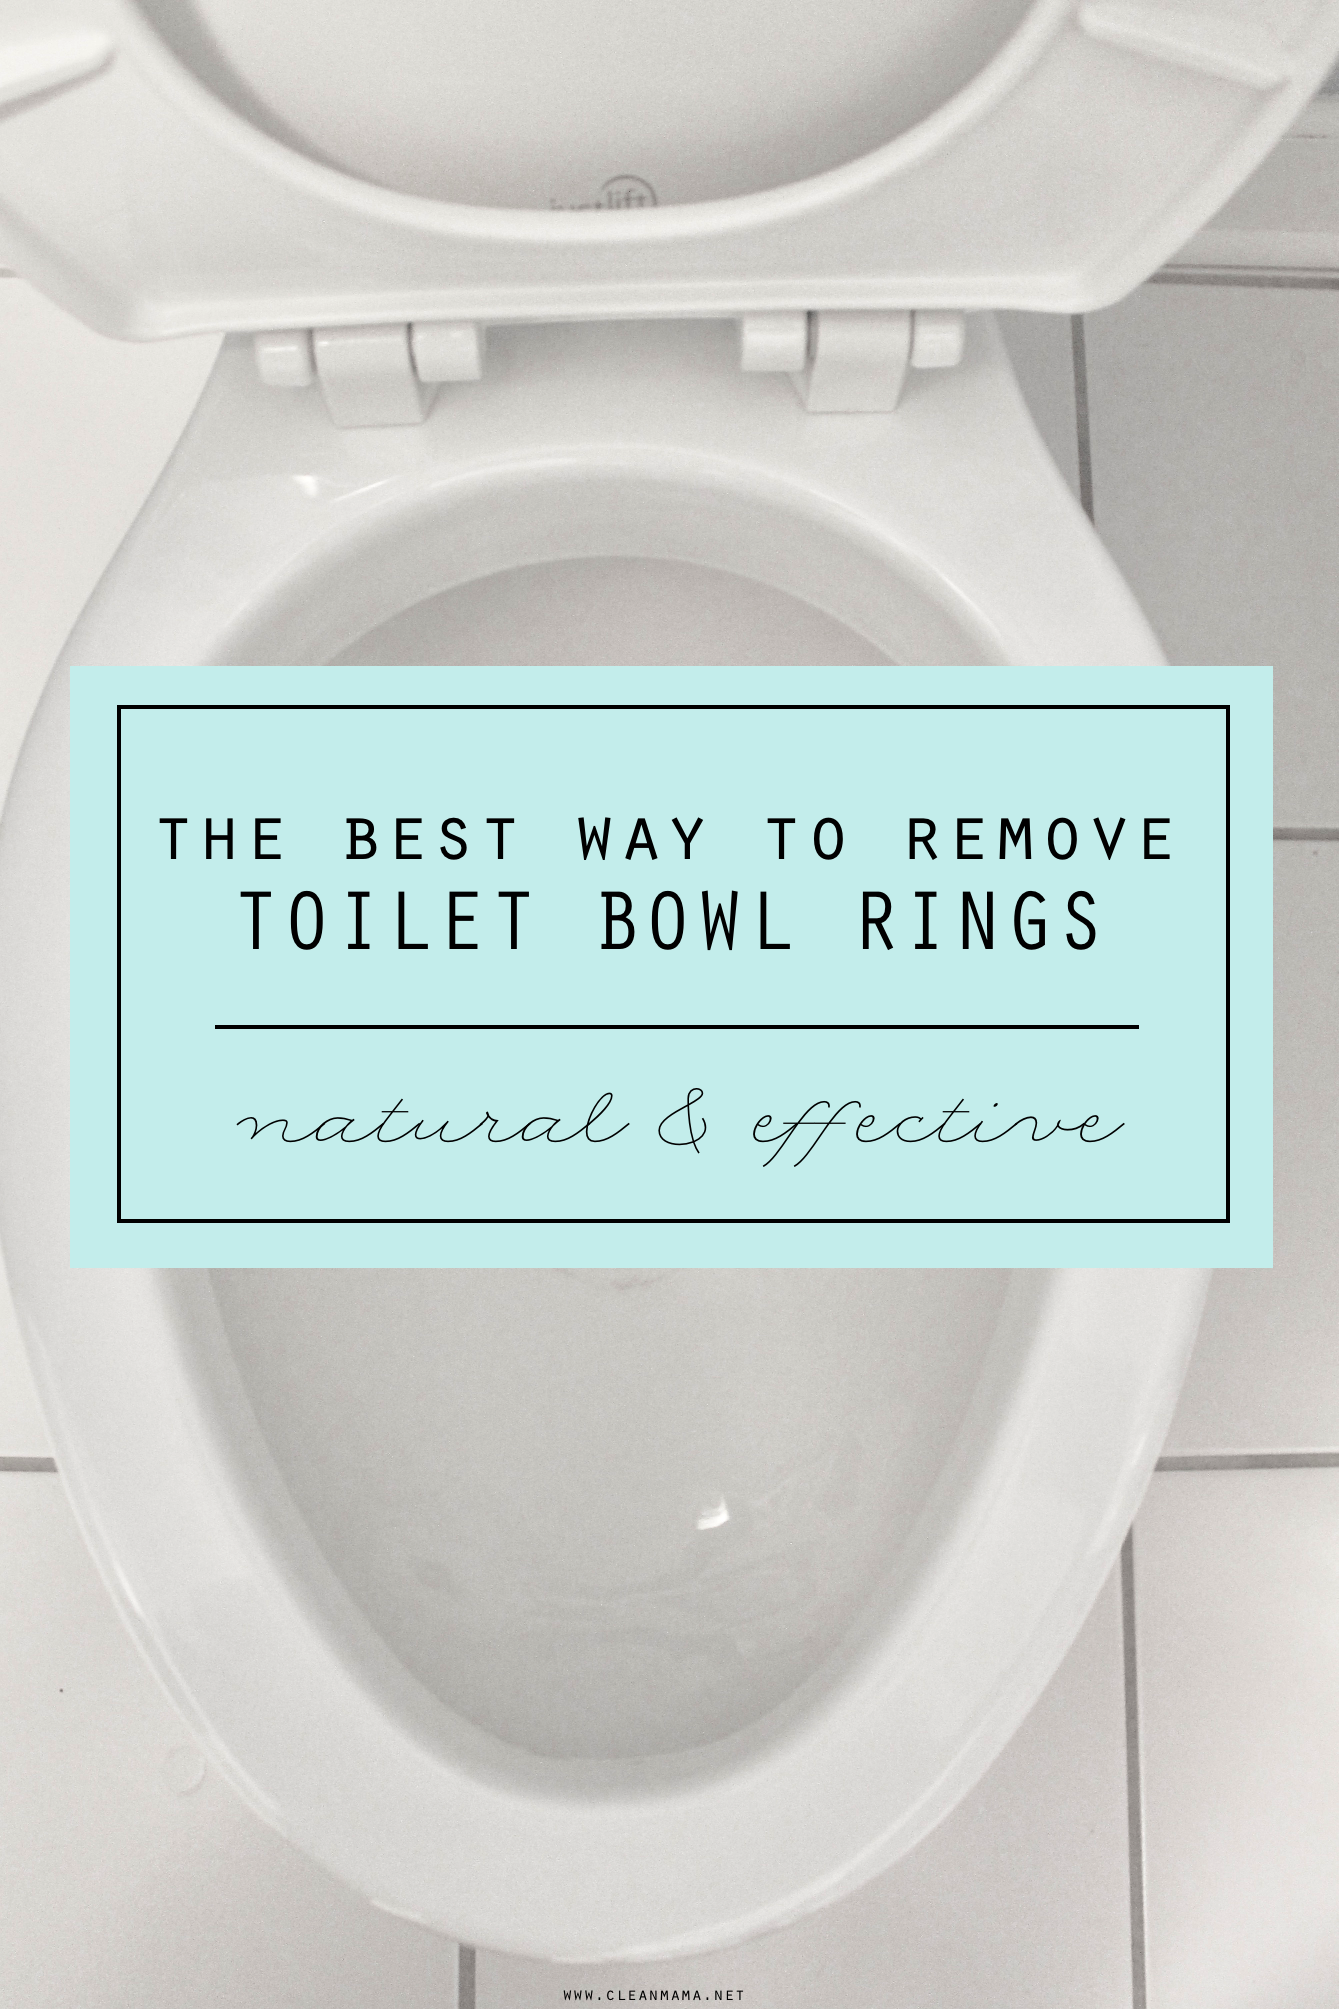 the best way to remove toilet bowl rings tips cleaning toilet bowl ring toilet cleaning. Black Bedroom Furniture Sets. Home Design Ideas